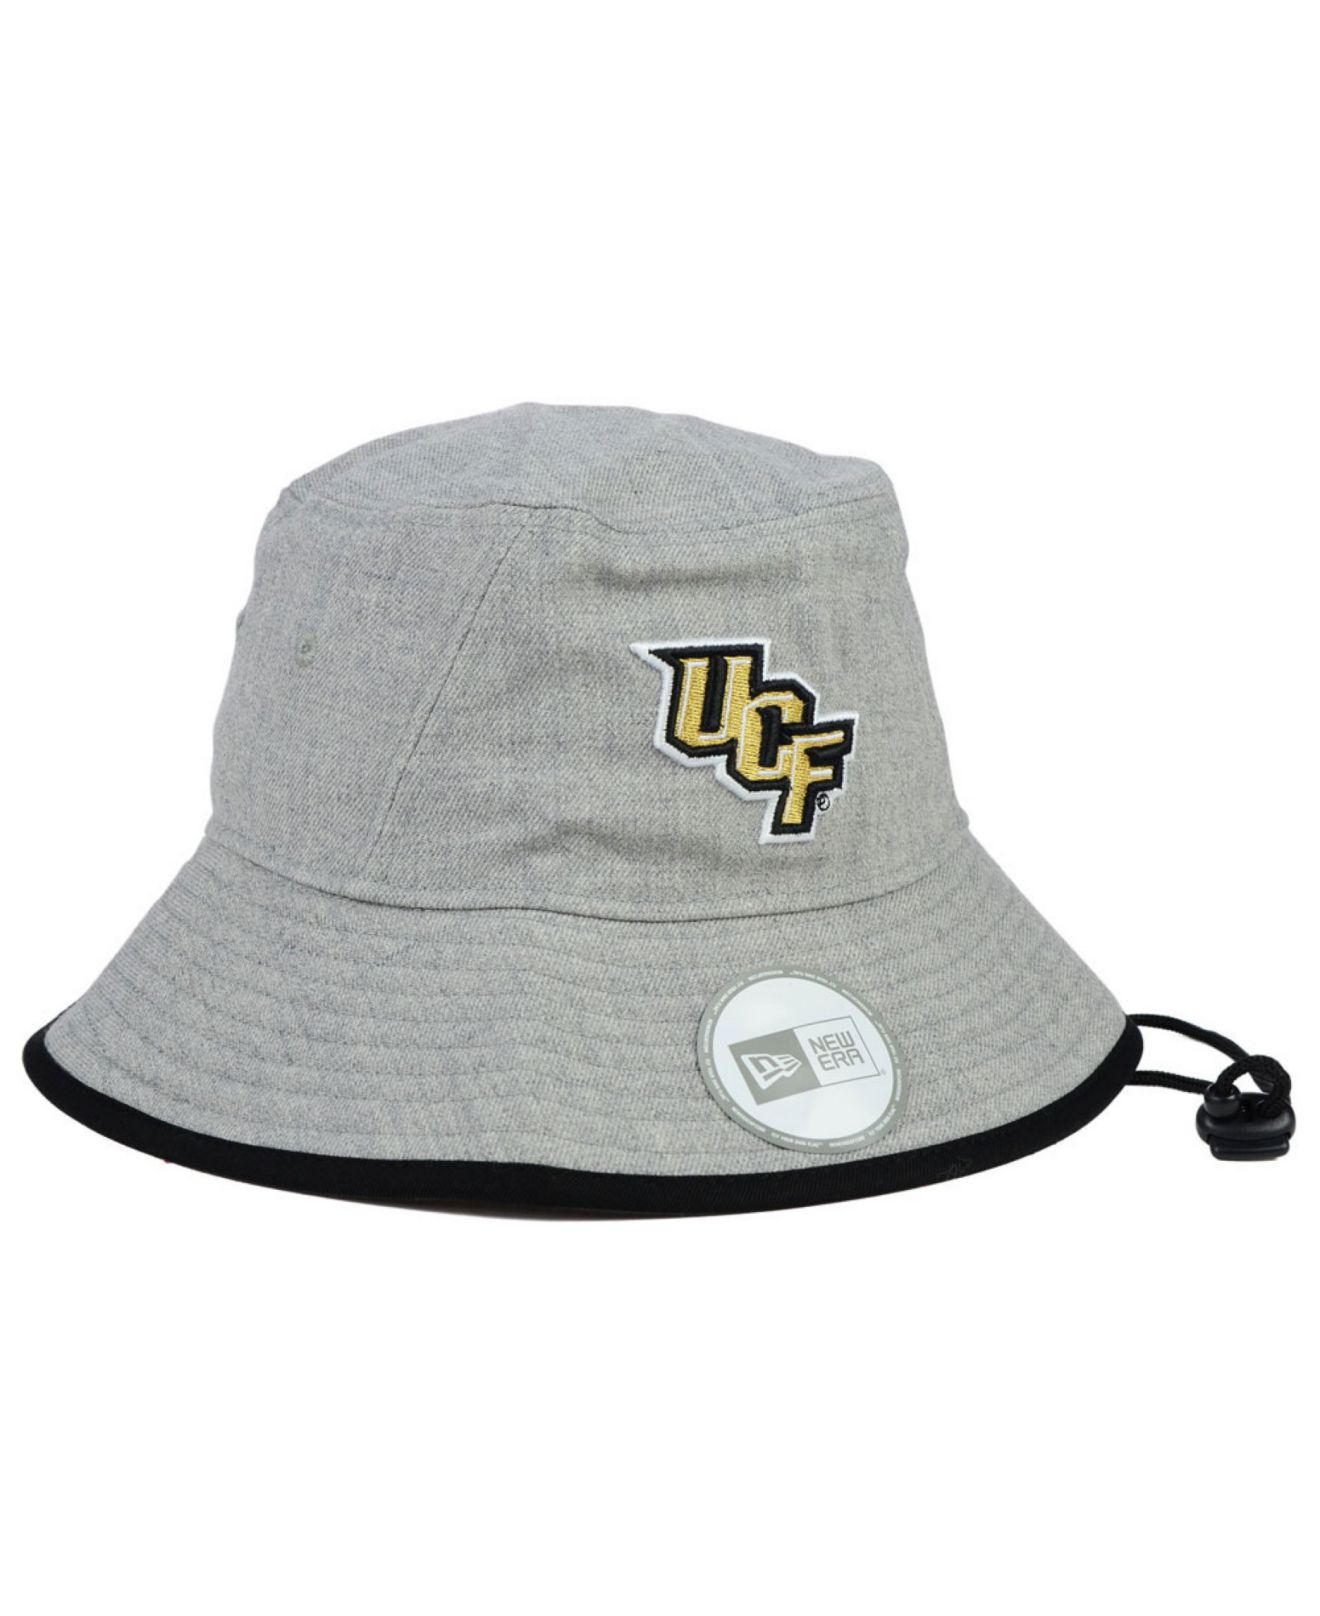 innovative design 3b2a6 67847 ... inexpensive lyst ktz ucf knights tip bucket hat in gray for men 459d5  c5fdd